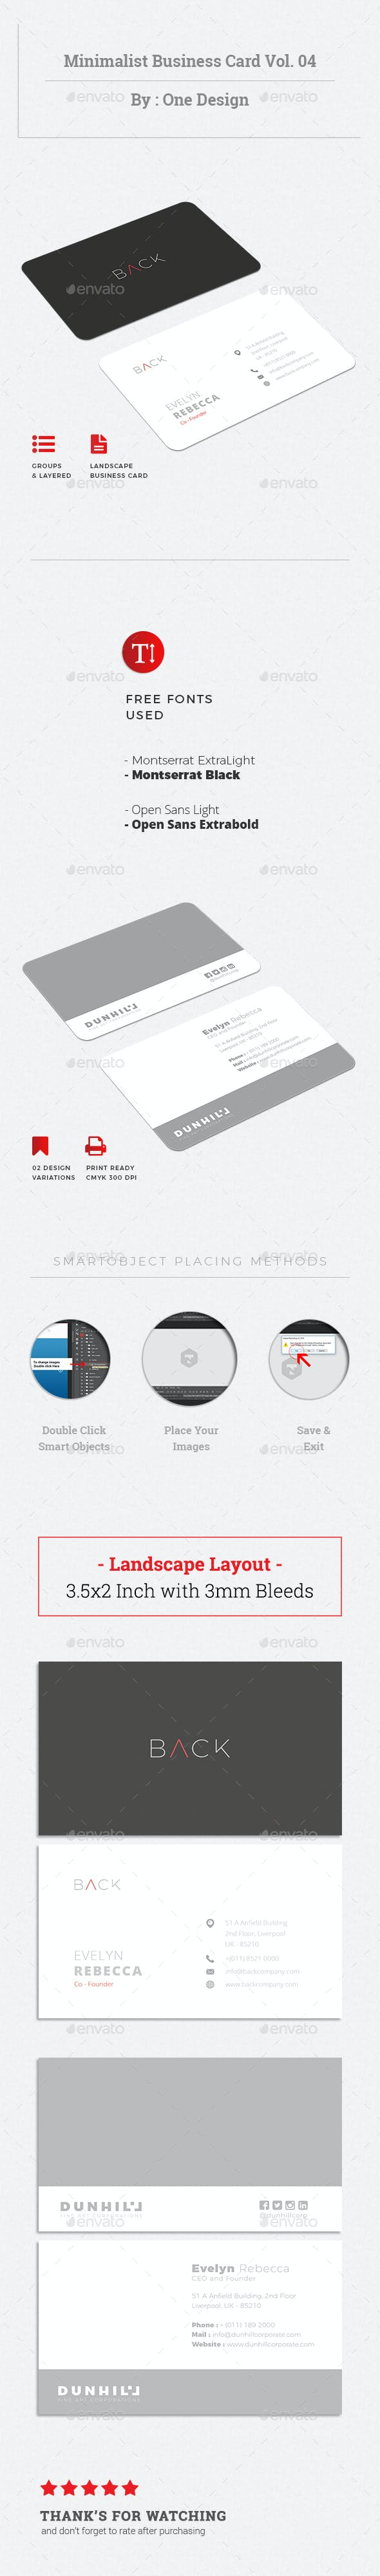 Minimalist Business Card Vol 04 By Onedsgn Graphicriver